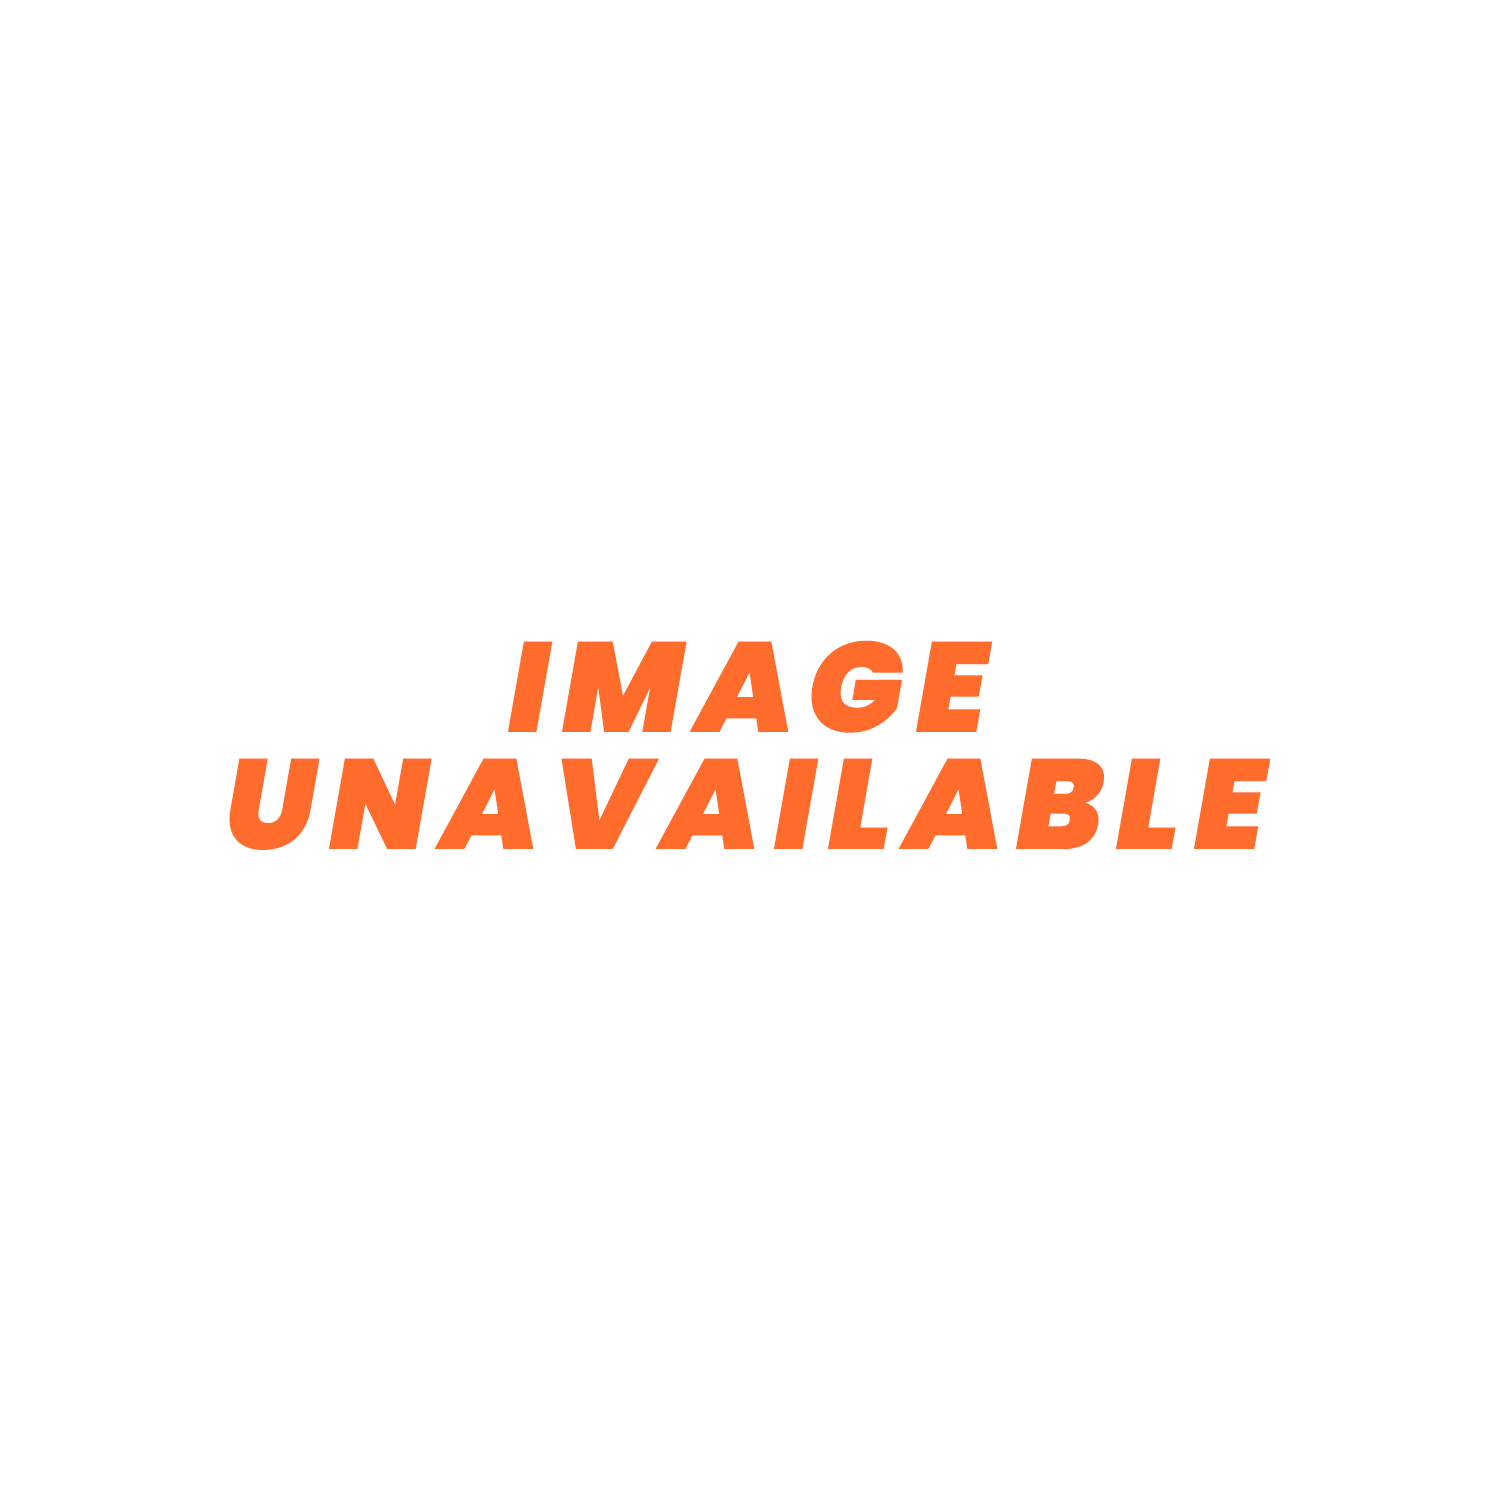 Modular Control Panel - Cable Controlled Heat